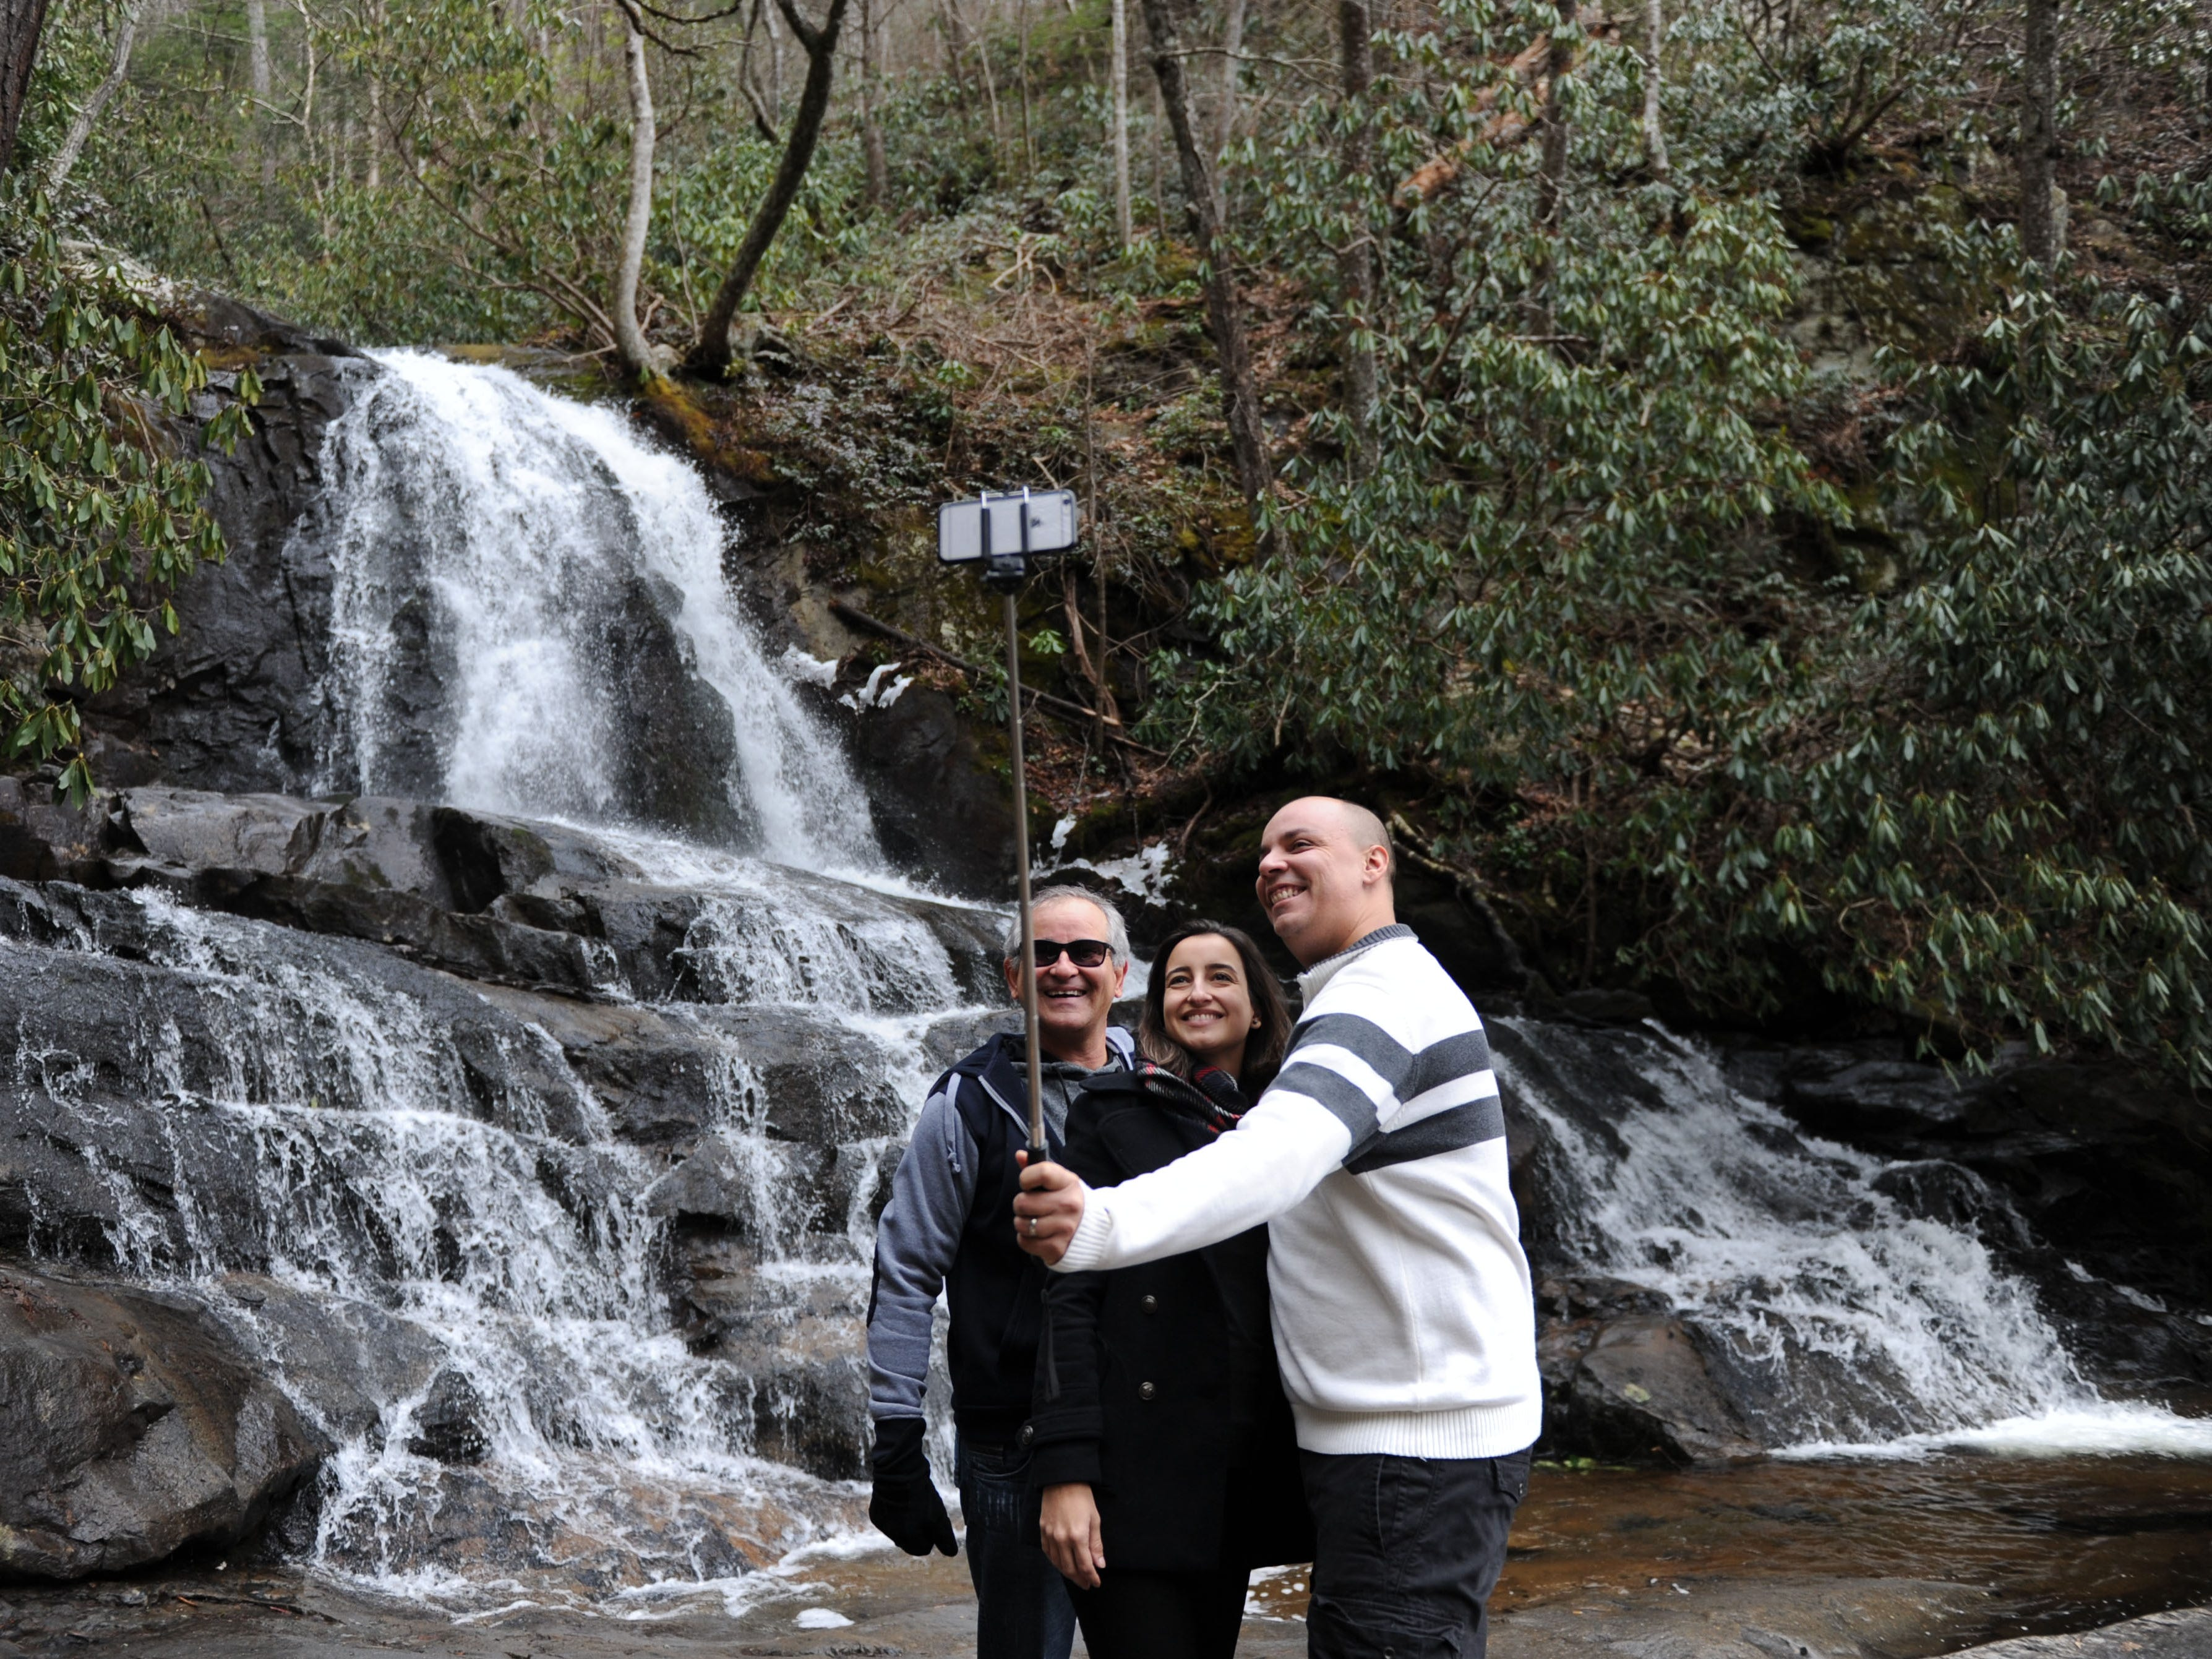 Luiz, left, Camila, and Fernando Nunez from Florida document their hike to Laurel Falls in the Great Smokey Mountains National Park on, Jan. 26, 2016.  The family, originally from Brazil, are on a week-long vacation in the Smokies. (CAITIE MCMEKIN/NEWS SENTINEL)